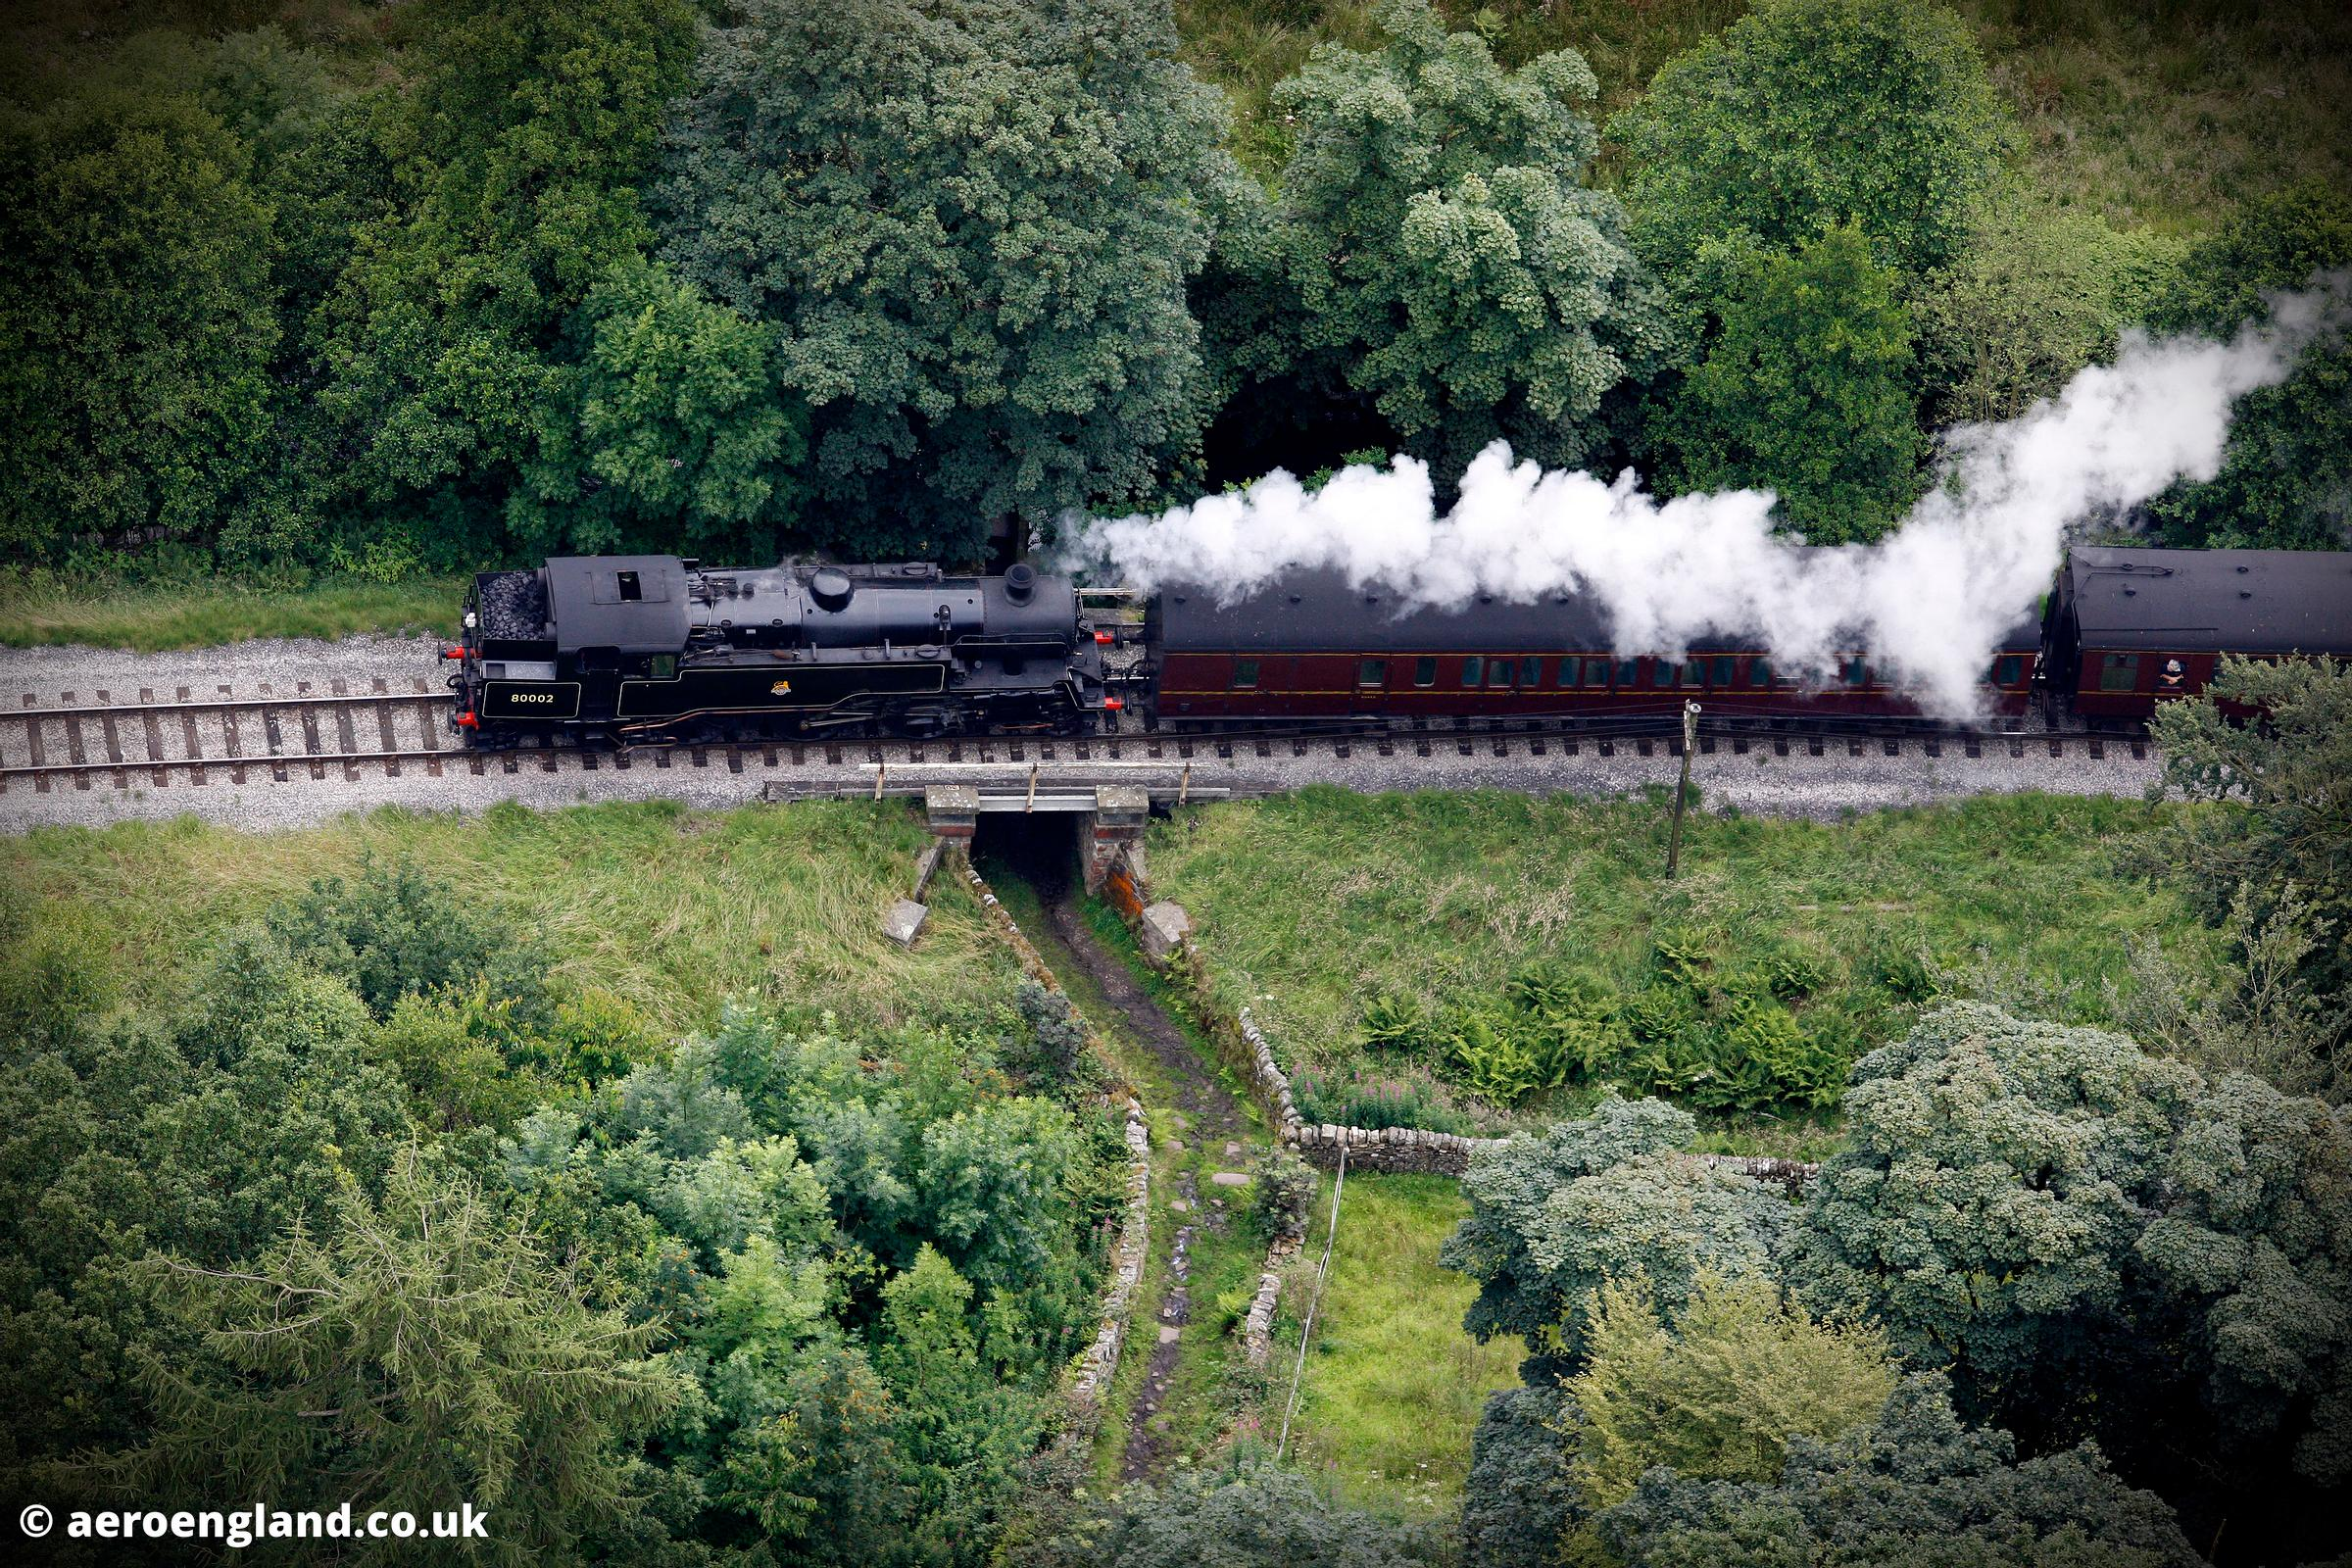 BR Standard Class 4 2-6-4T steam locomotive on the Keighley and Worth Valley Railway at Howarth Yorkshire